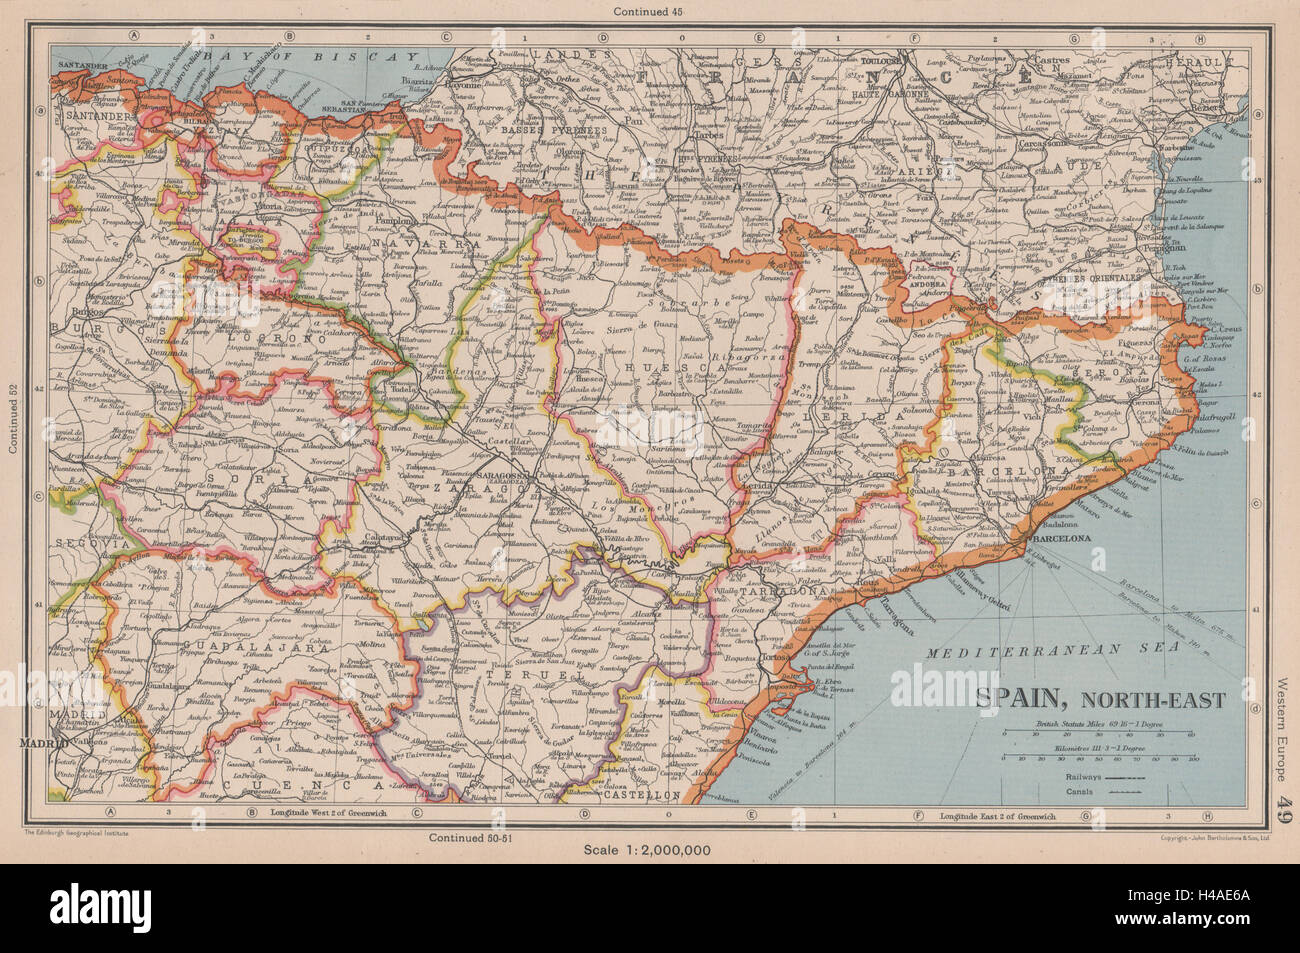 North Of Spain Map.Spain North East Catalonia Catalunya Aragon Navarra Basque